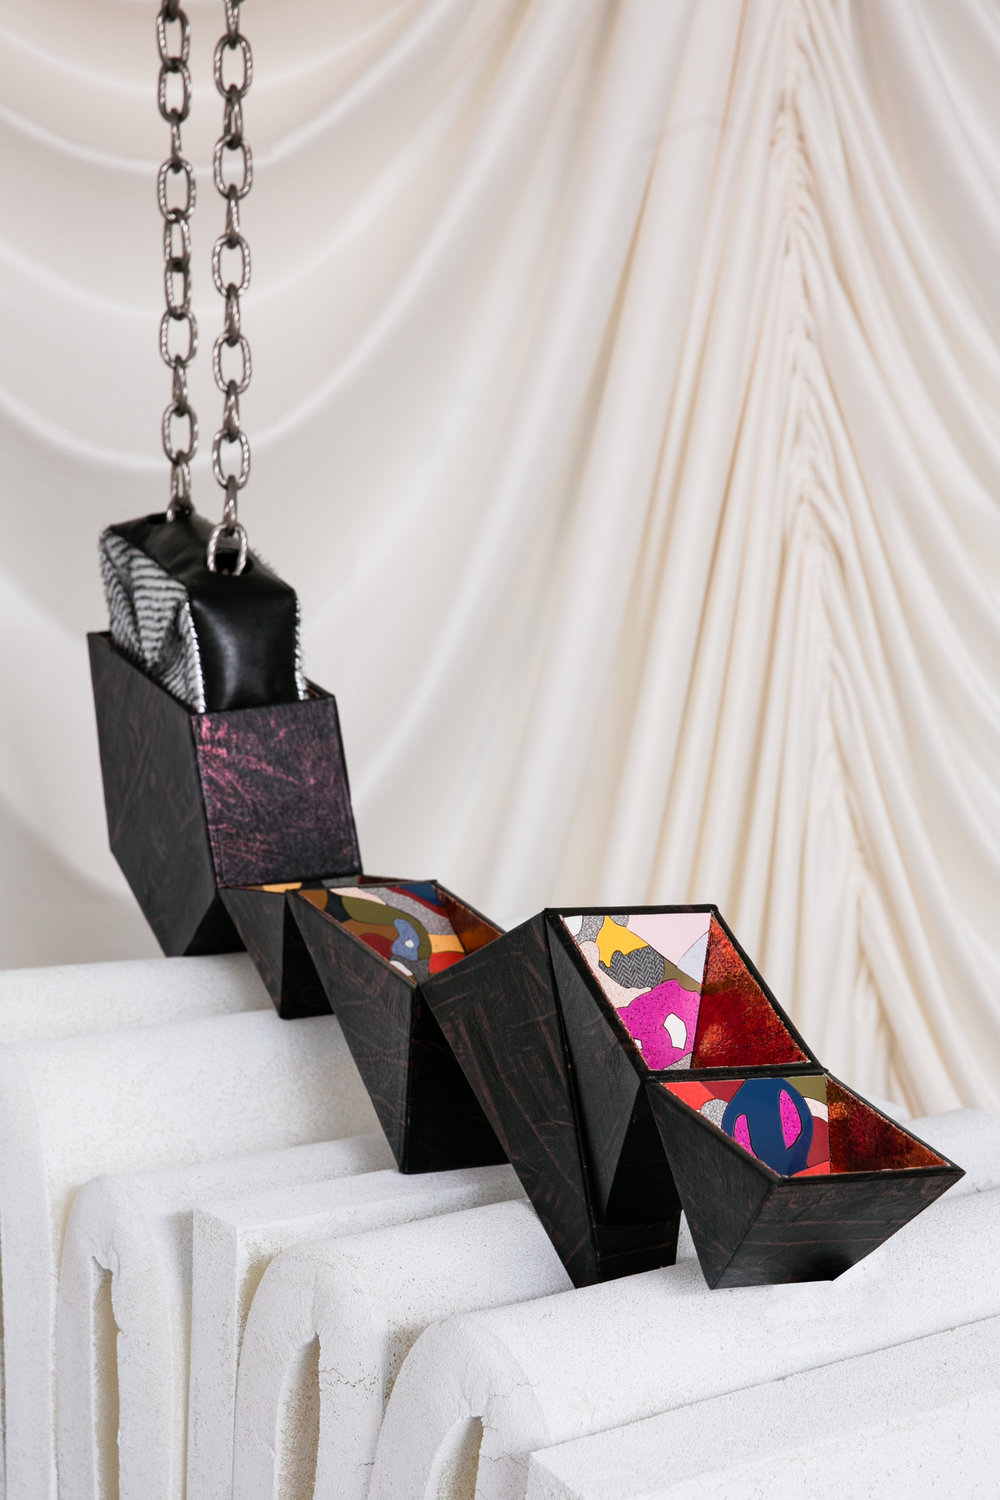 Yin-Hsin Chang - Accessories designer